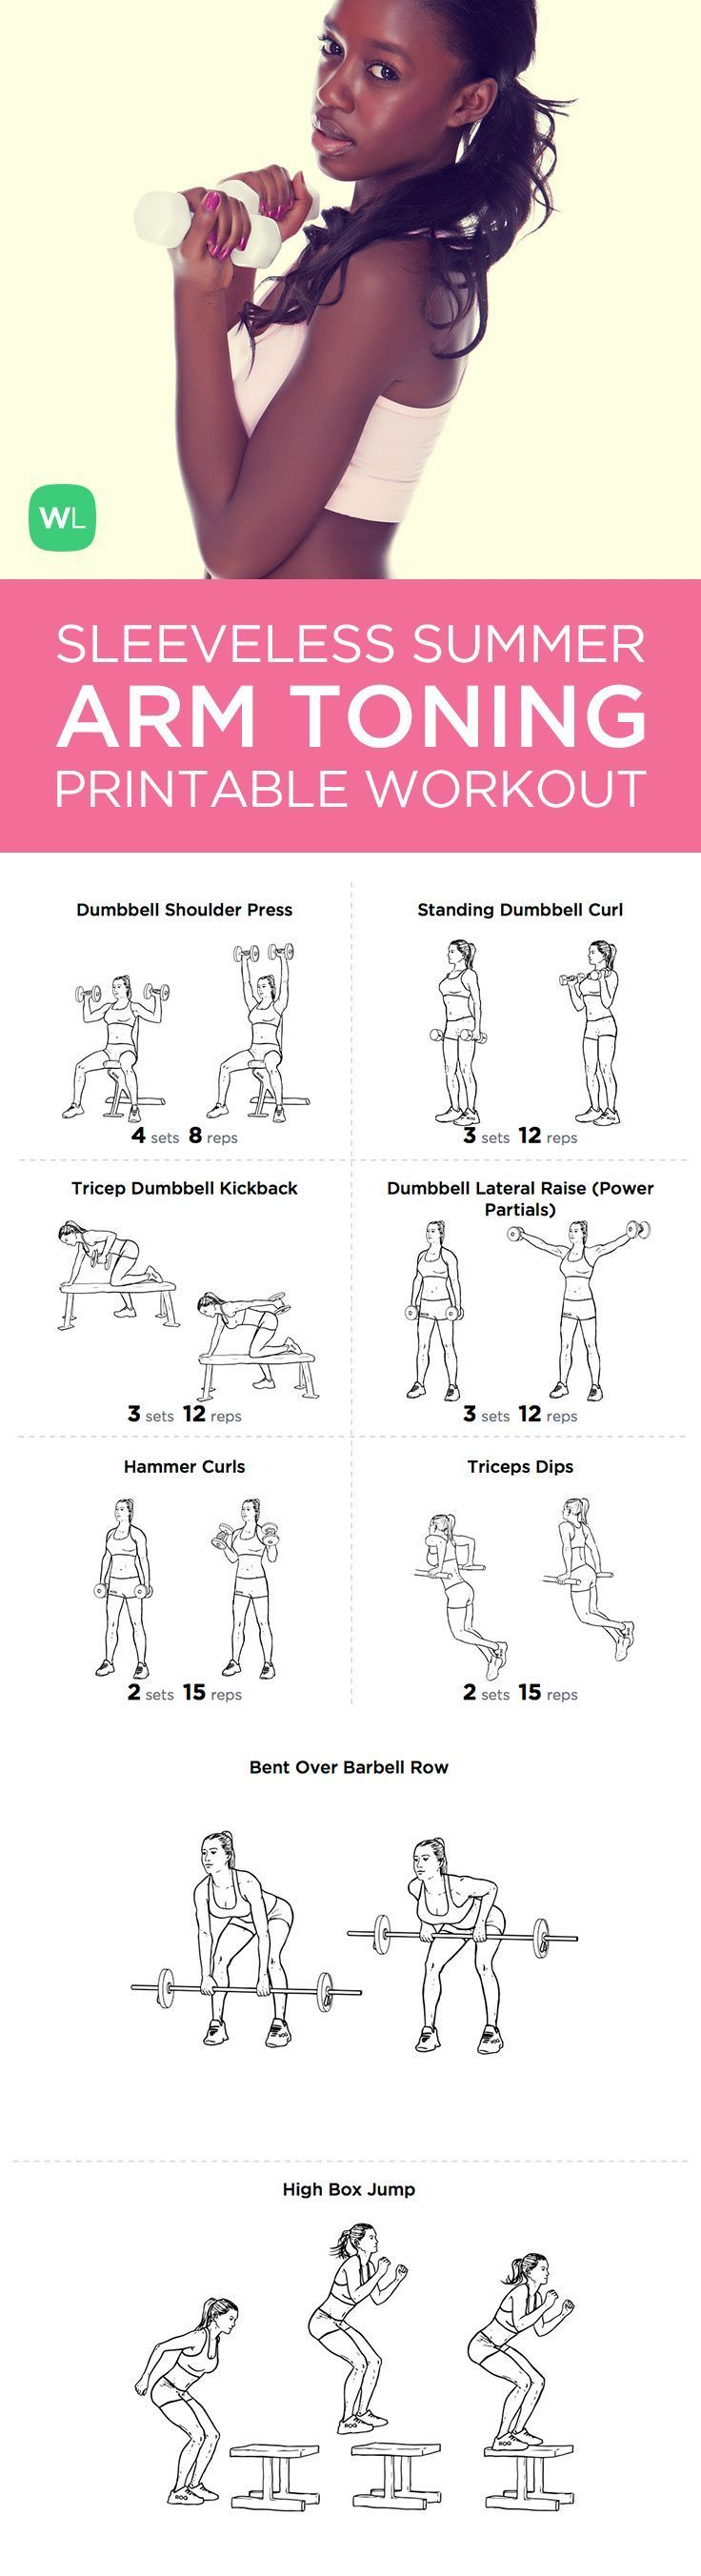 15-minute Summer Sleeveless Arms Toning printable workout with exercise illustrations.